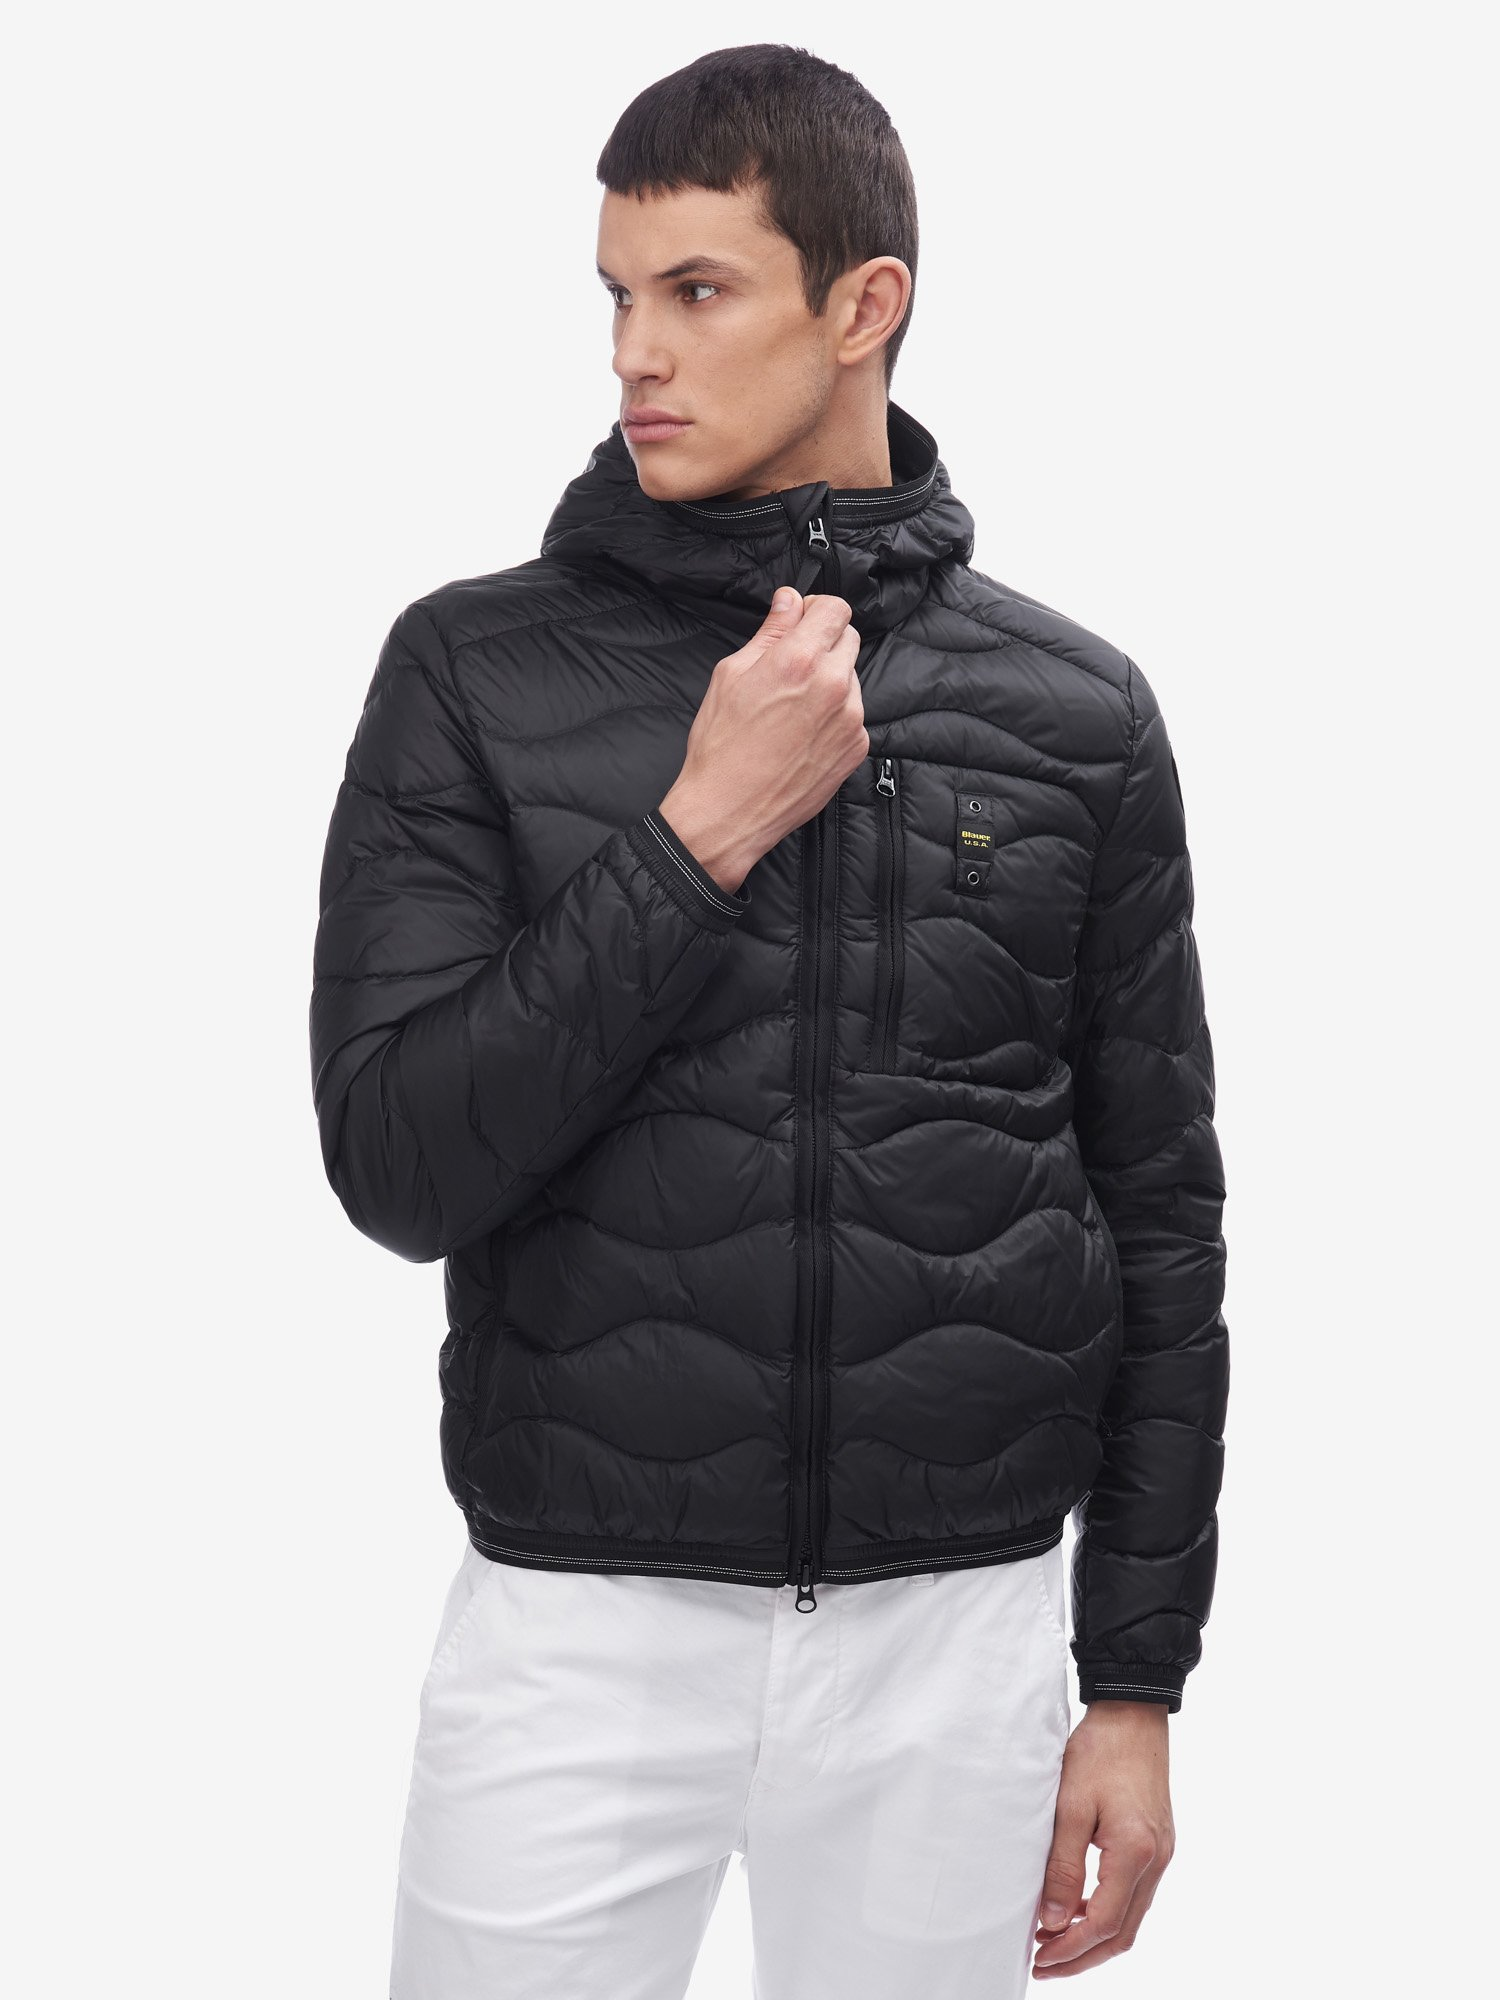 BOLTON HORIZONTAL WAVE-QUILTED DOWN JACKET WITH HOOD - Blauer